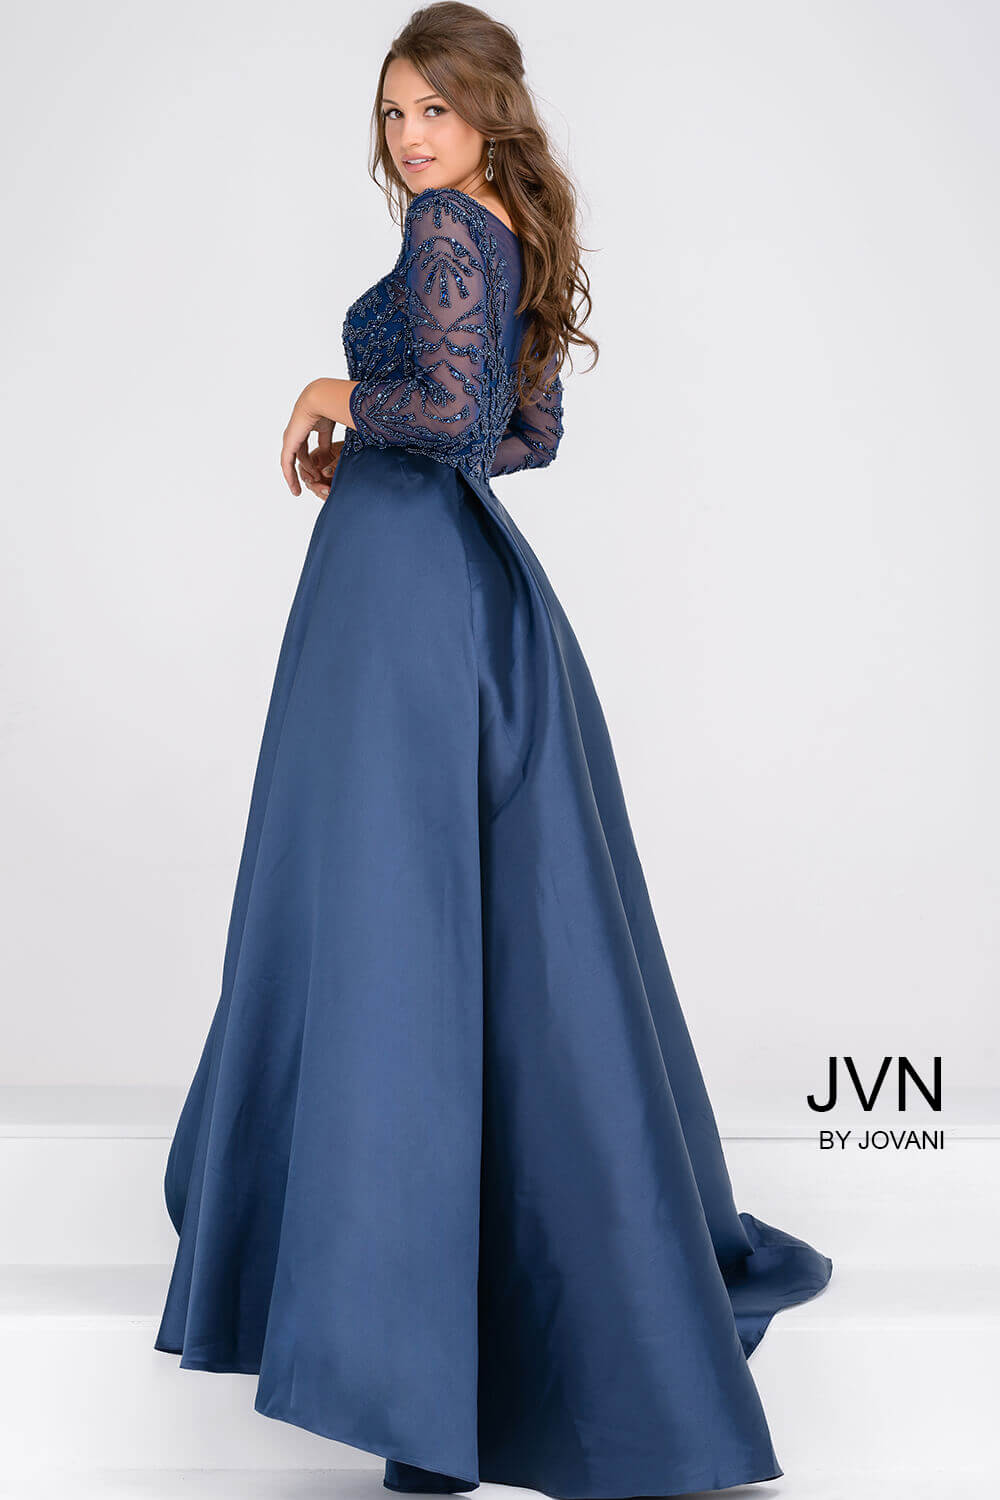 Jovani Dresses Arizona